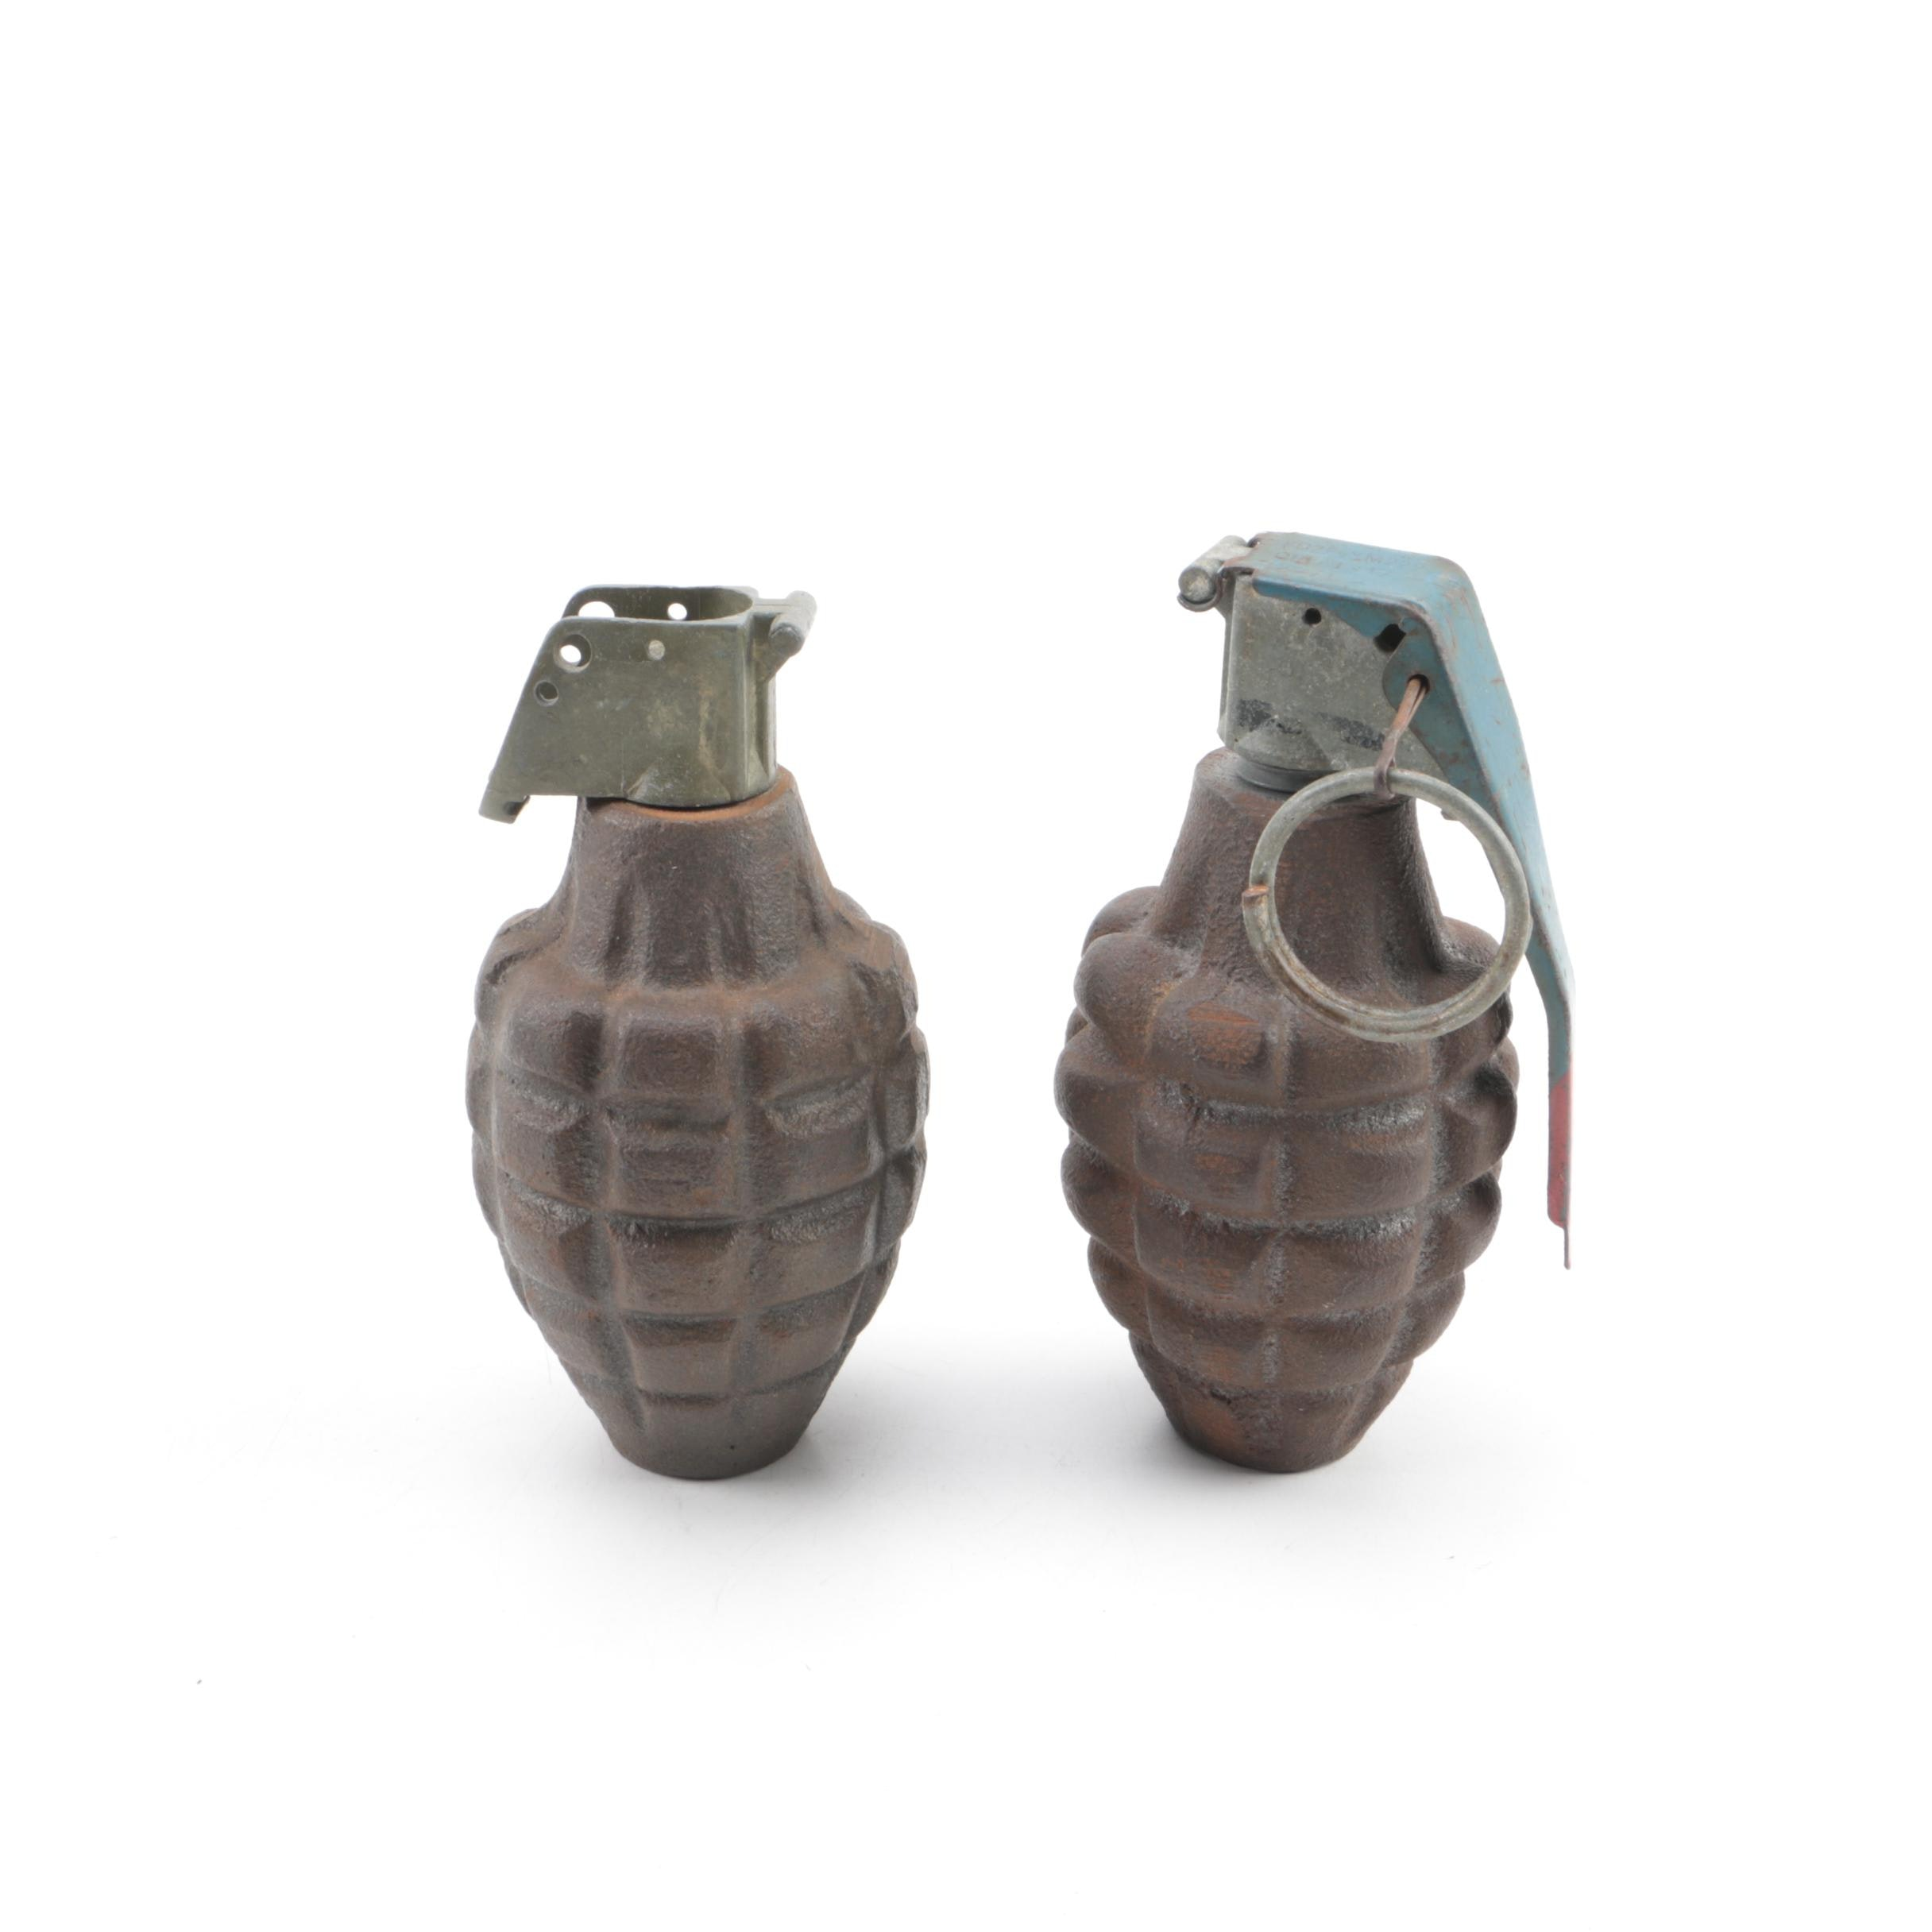 Mk II Pineapple Grenade Paperweights